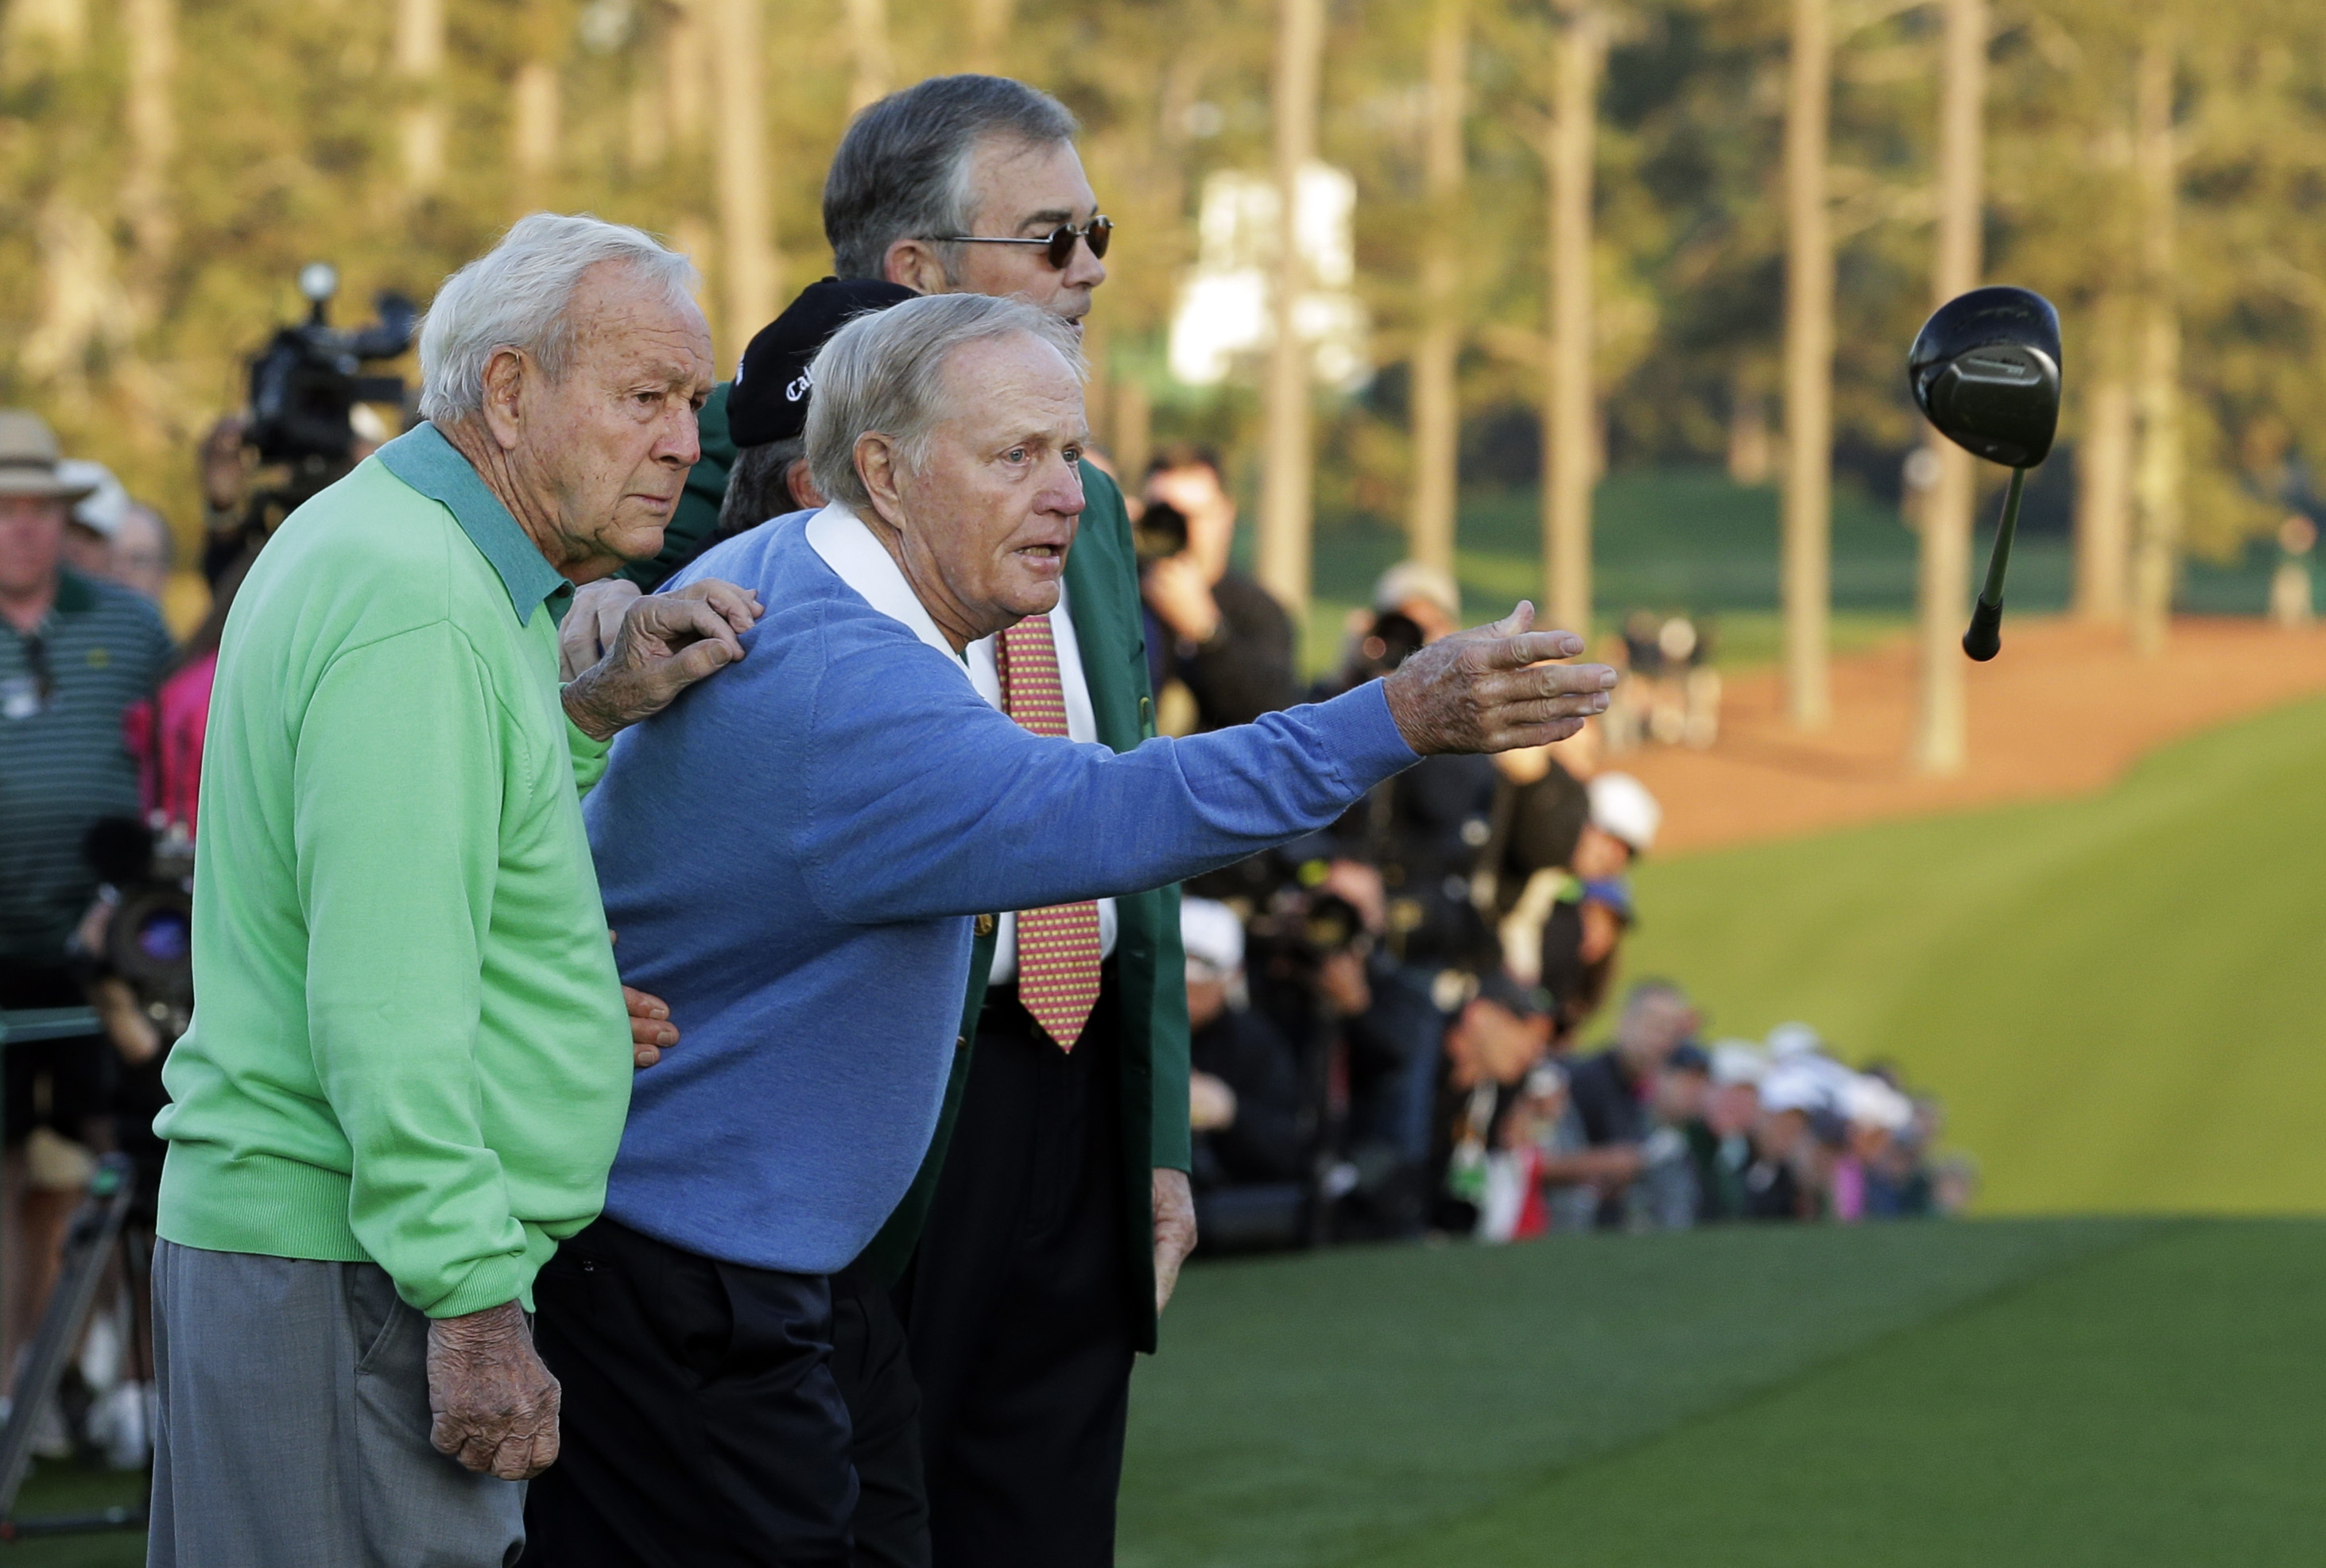 Jack Nicklaus, center, throws his driver while posing for photos with Arnold Palmer and Billy Payne, Chairman of the Augusta National Golf Course after hitting ceremonial drives on the first tee during the first round of the Masters golf tournament